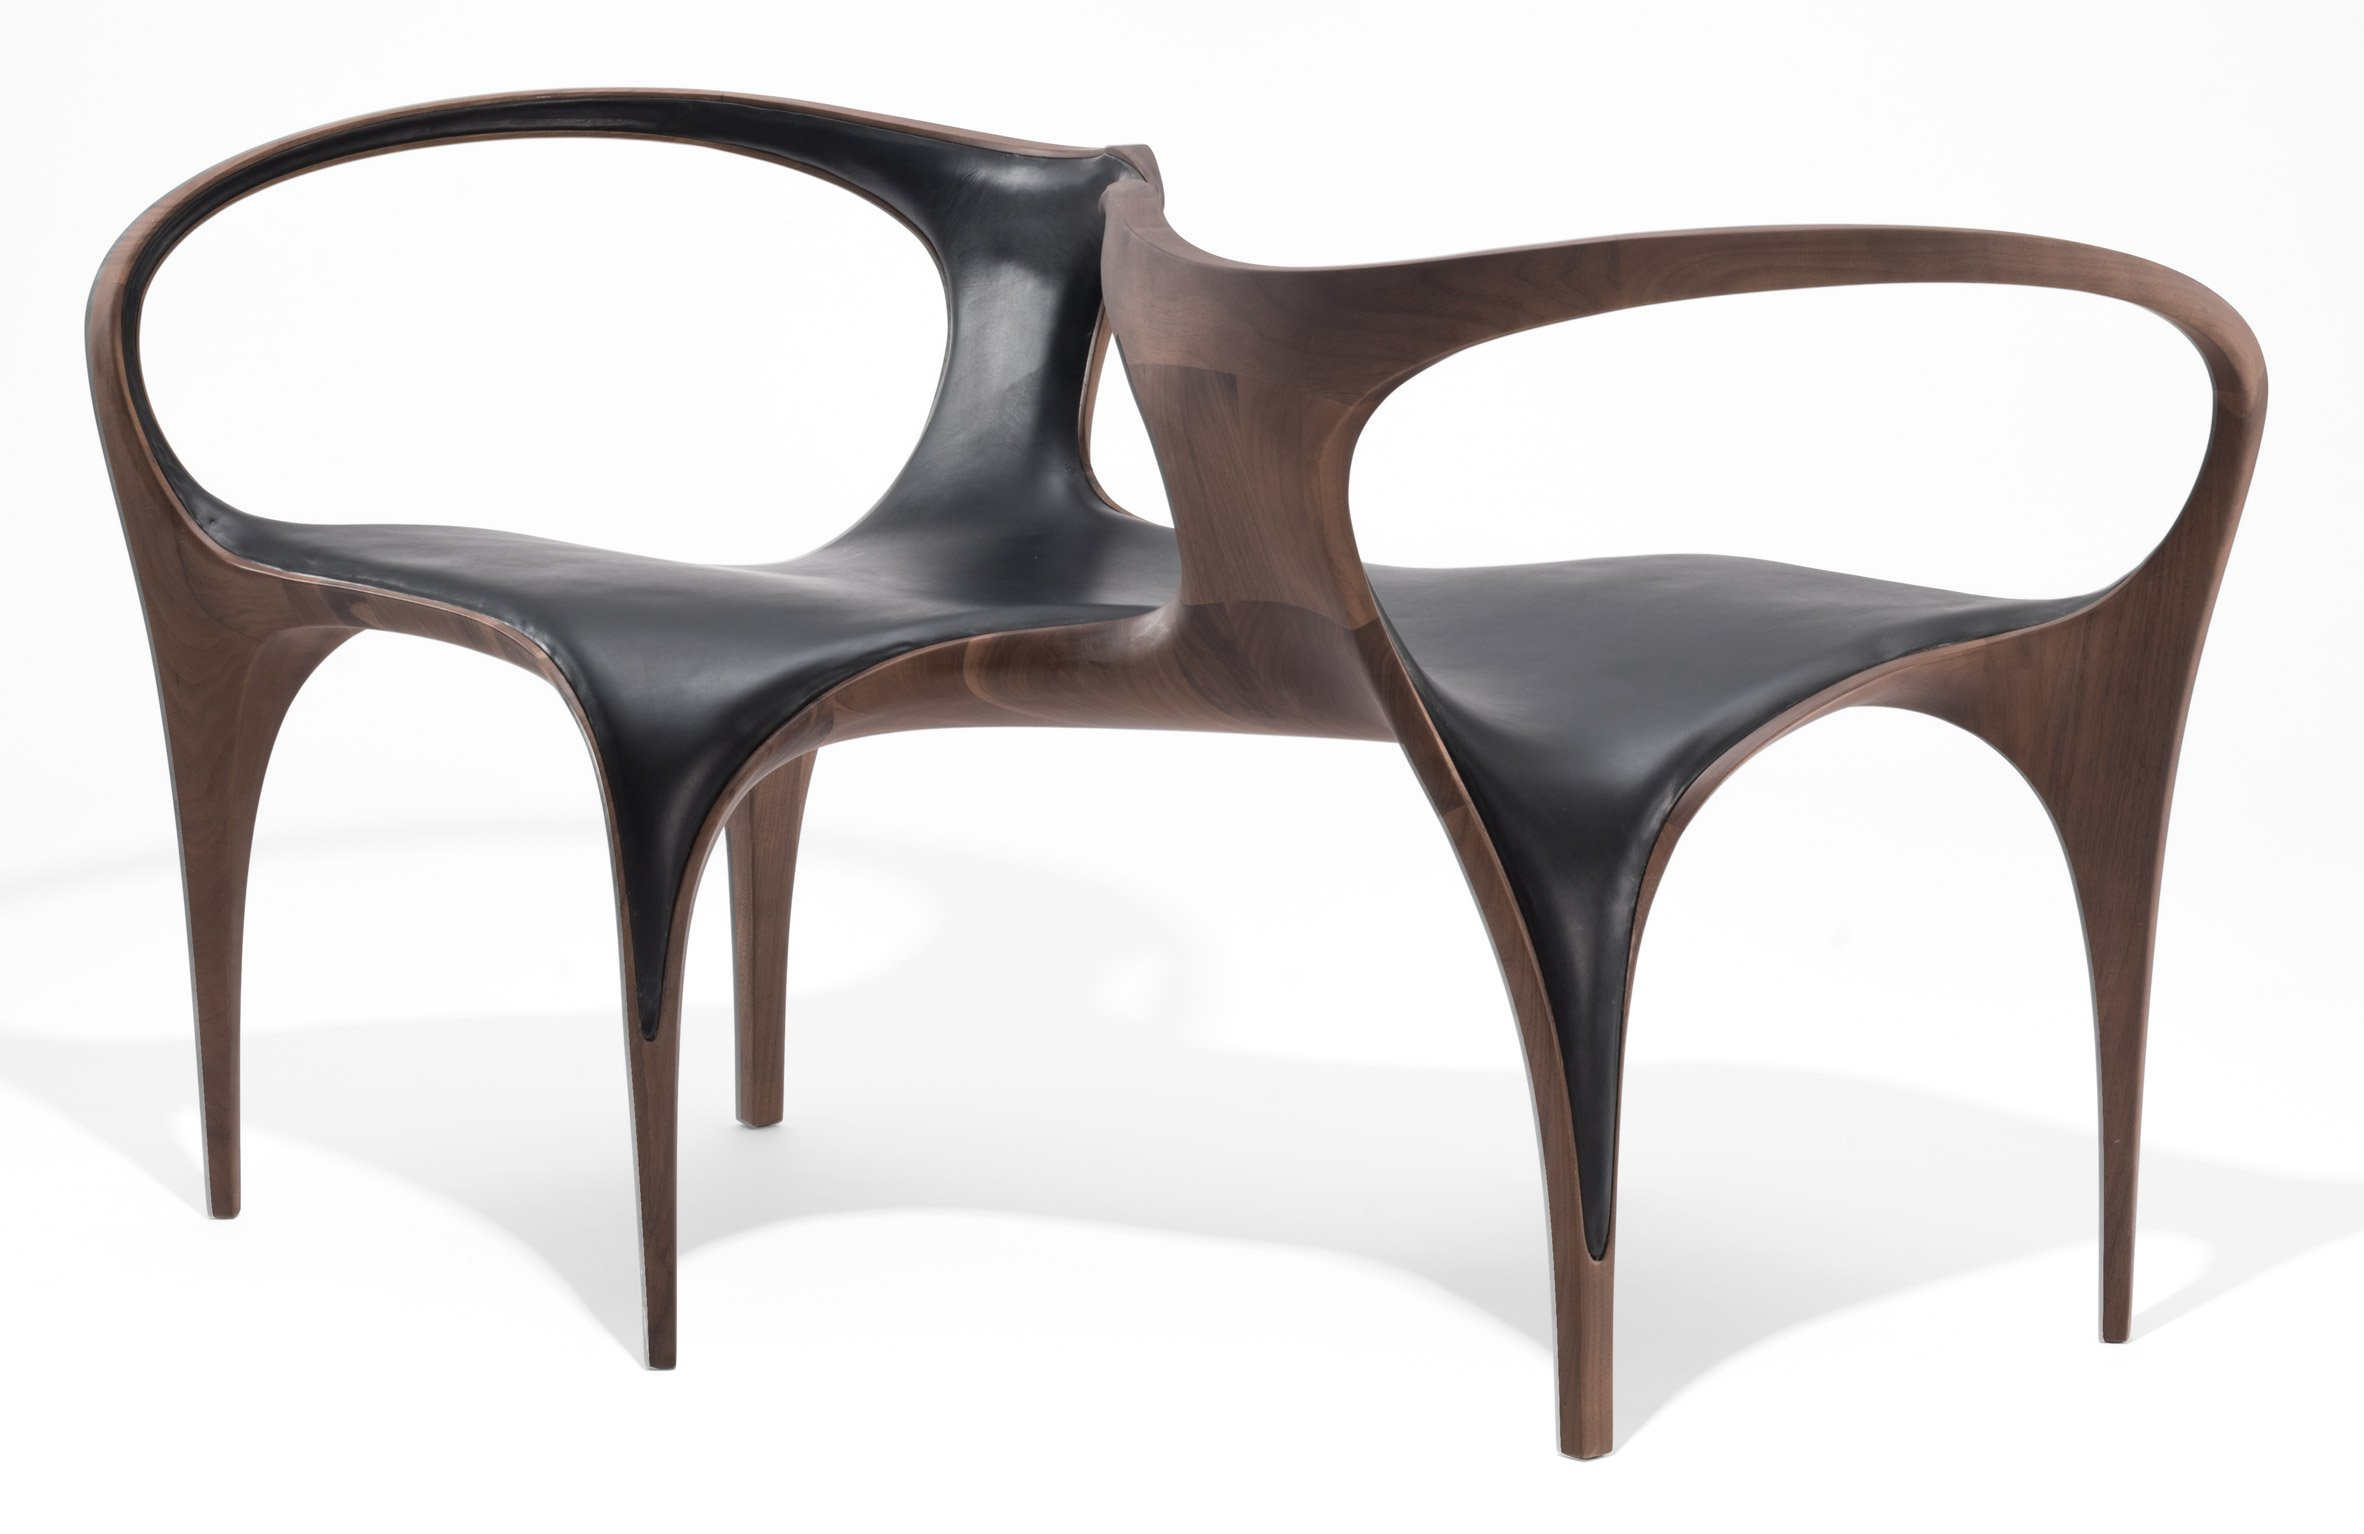 ultrastellar-zaha-hadid-furniture-collection-david-gill-gallery-wood-leather_dezeen_2364_col_0